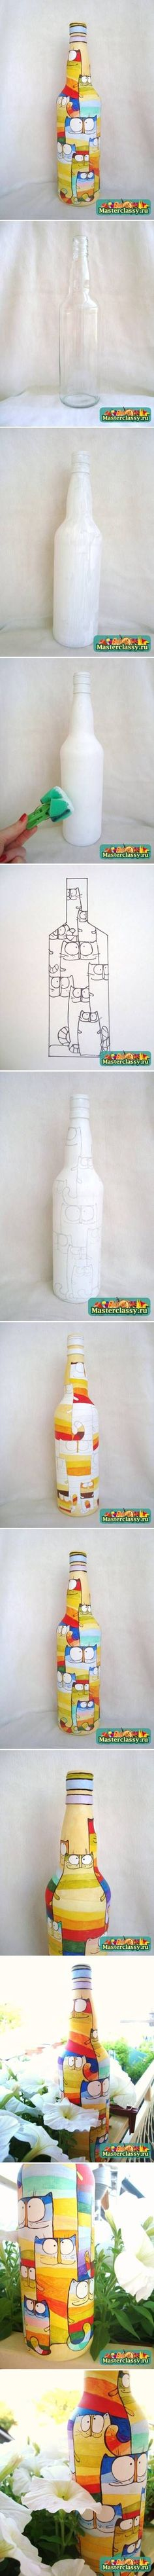 DIY Bottle of Acrylic Cat Painting DIY Projects | UsefulDIY.com Follow Us on Facebook == http://www.facebook.com/UsefulDiy #catdiy